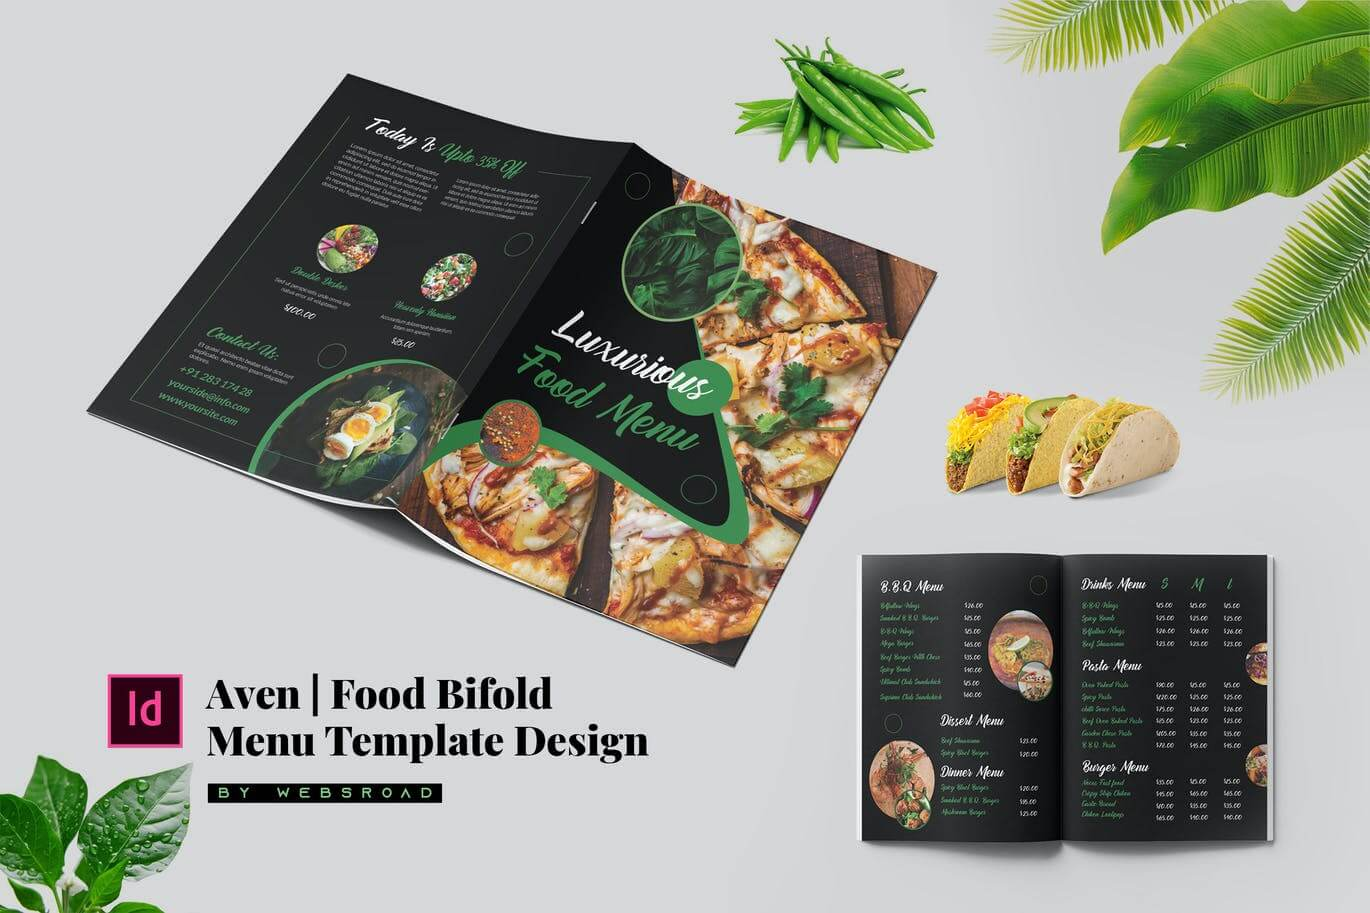 Aven Food Bi-fold Menu Template Design (1)